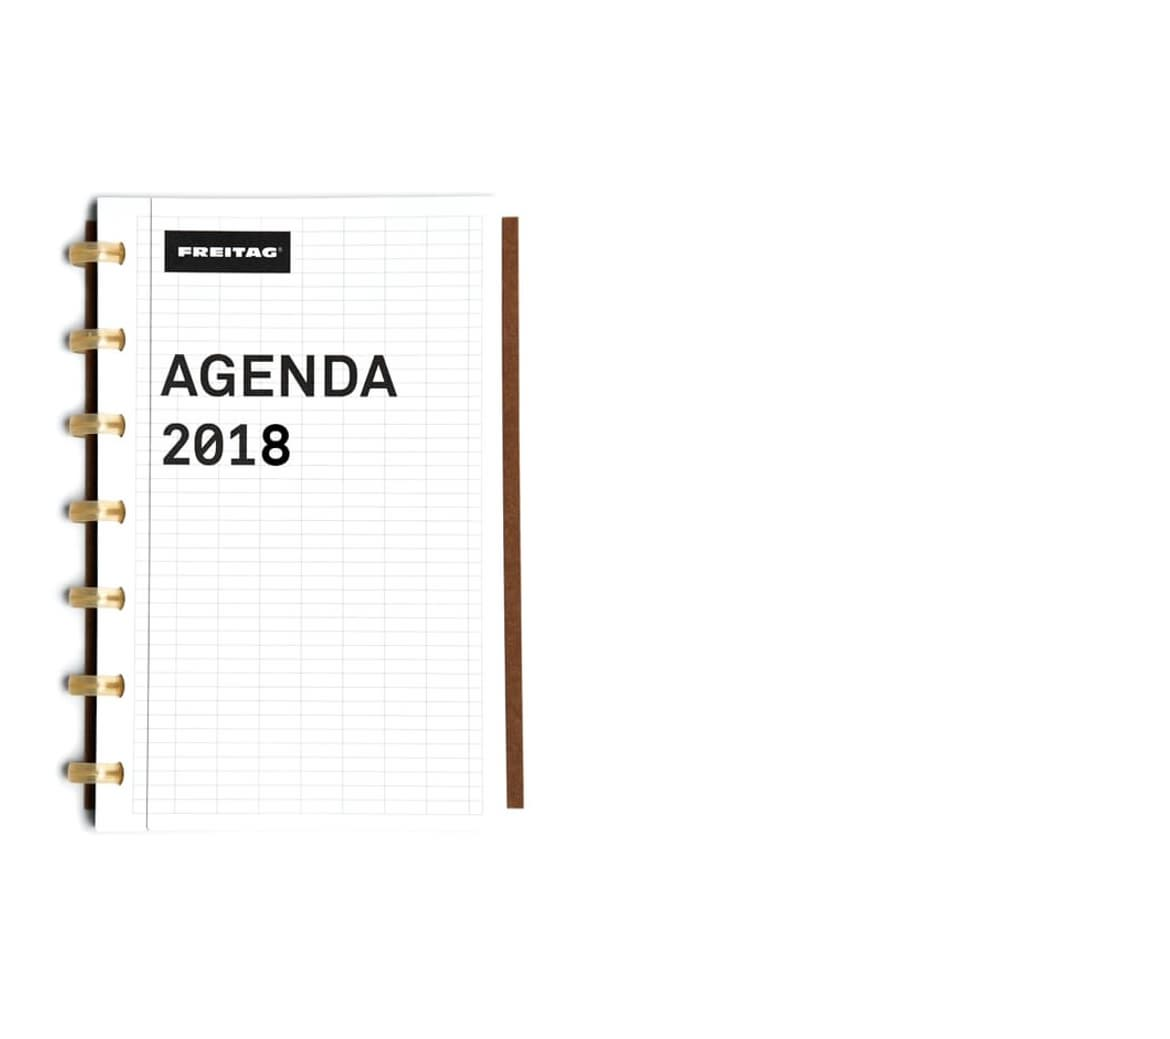 F27 Agenda Inlay for Freitag Agenda